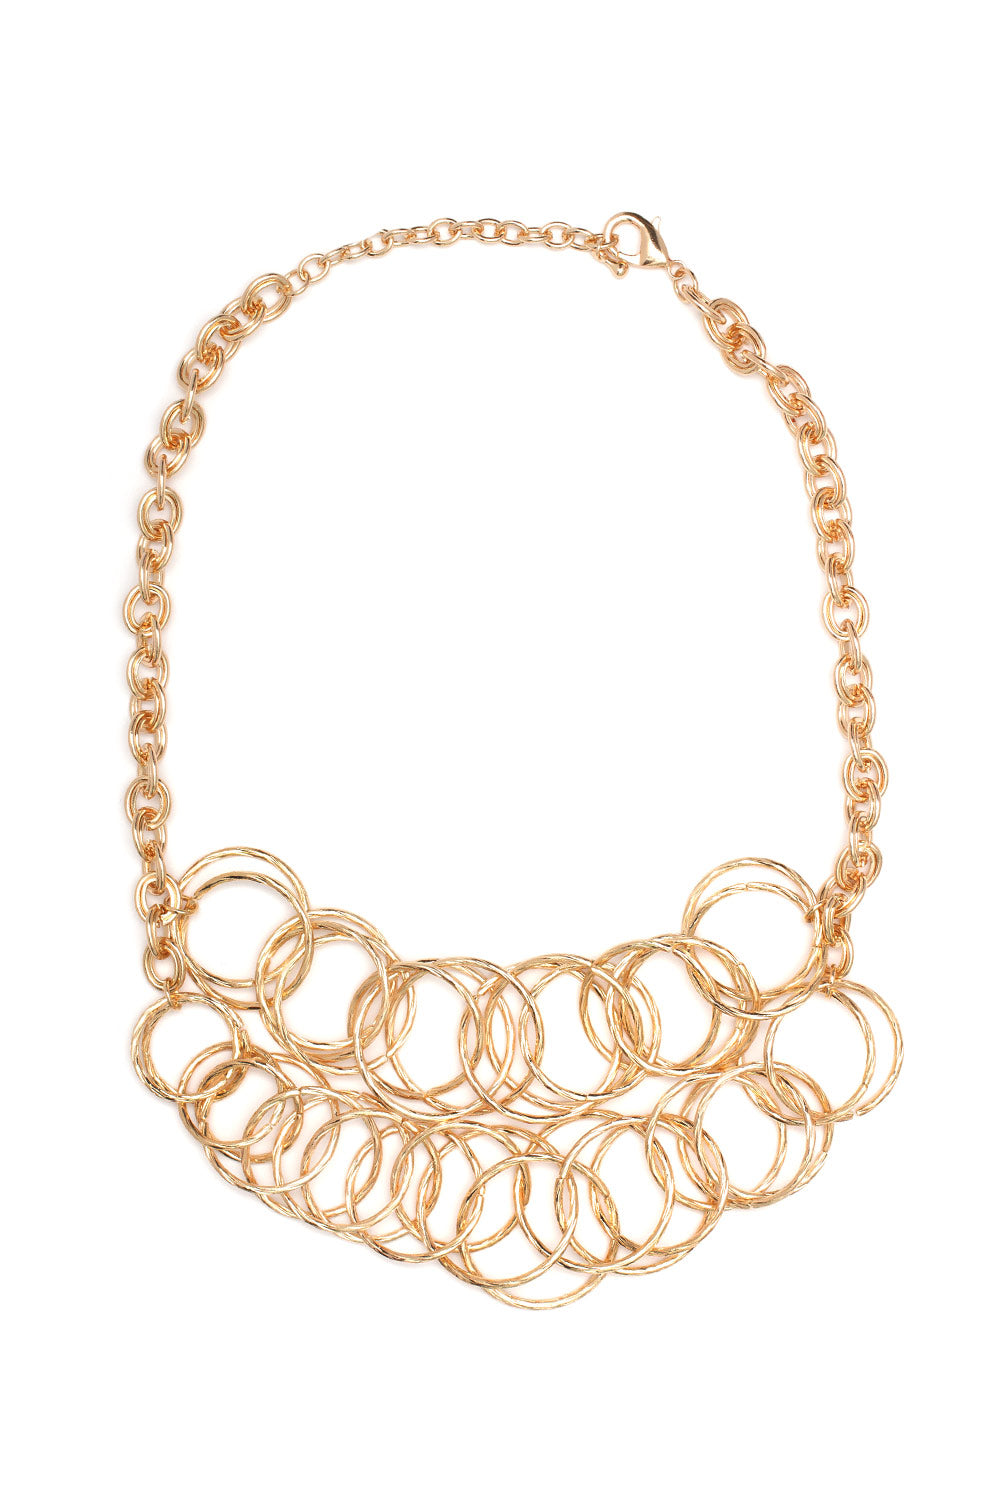 Type 1 Jumping Through Hoops Necklace